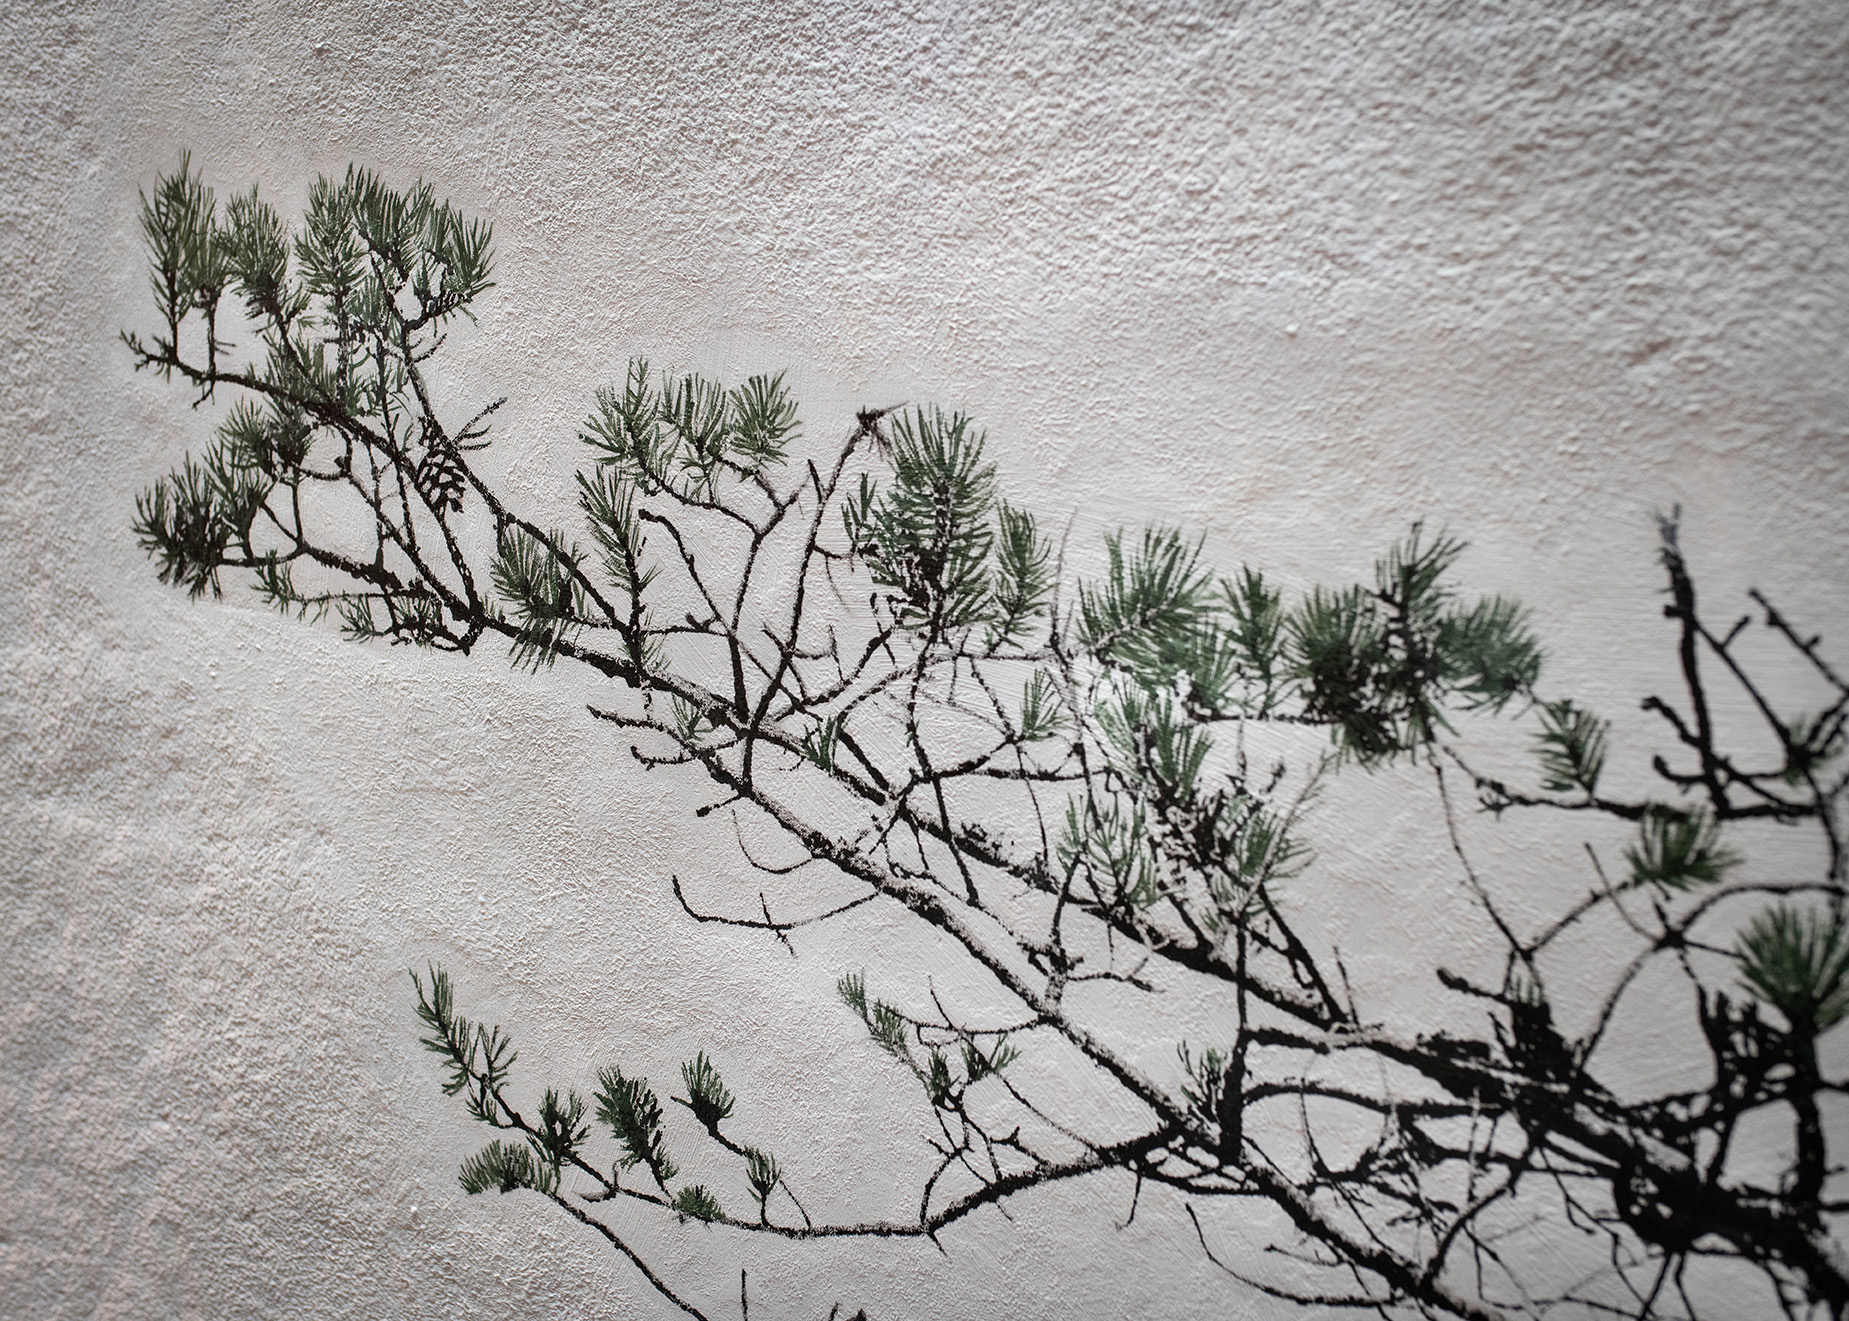 Image of a lit wall with a pine, close-up.